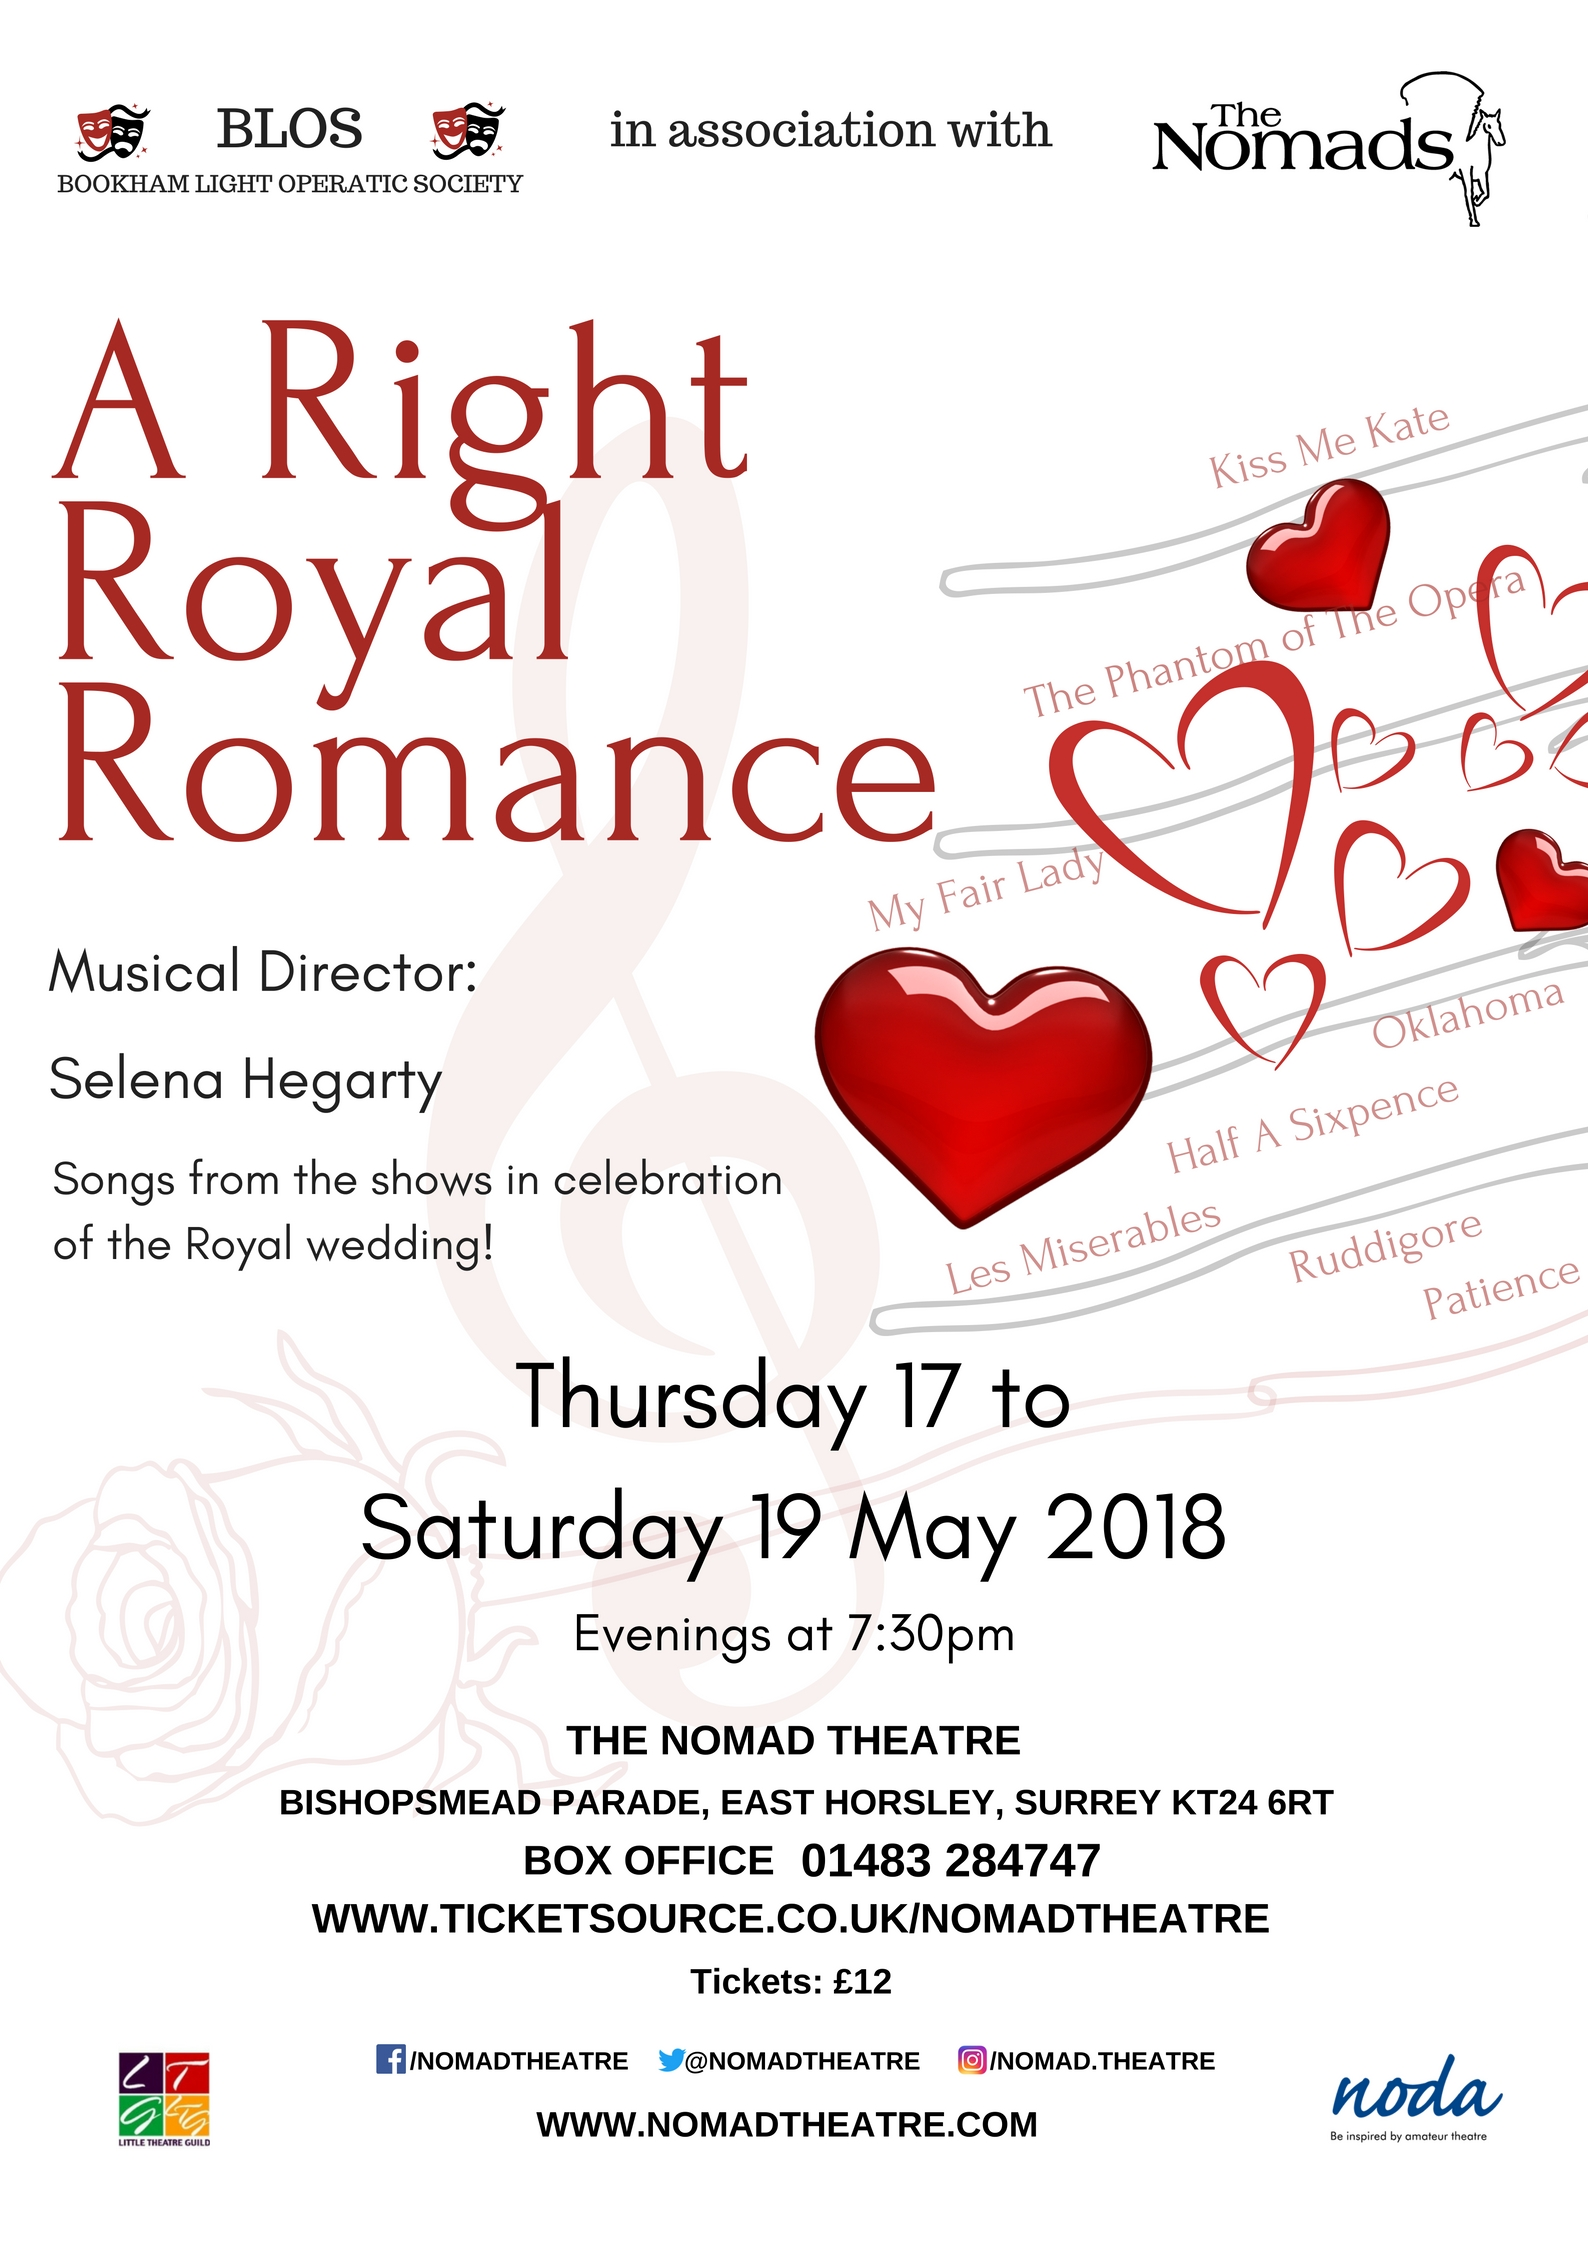 A Right Royal Romance - a concert to celebrate the Royal wedding